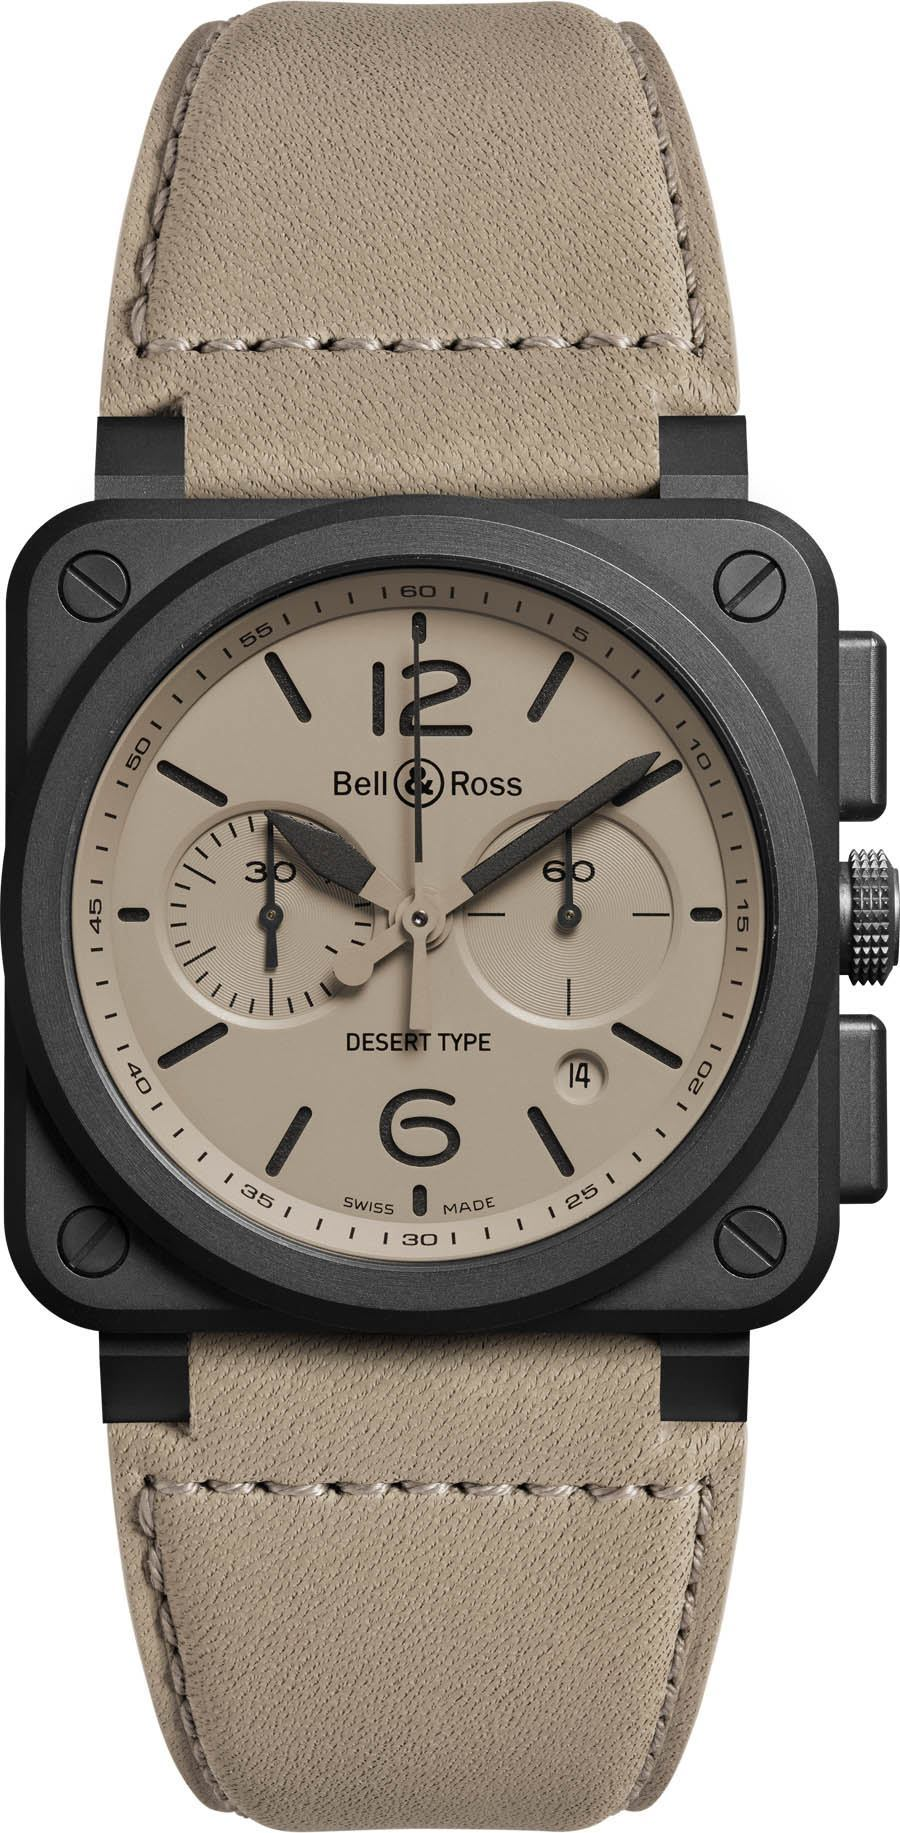 Bell & Ross: Bicompax-Chronograph BR03-94 Desert Type